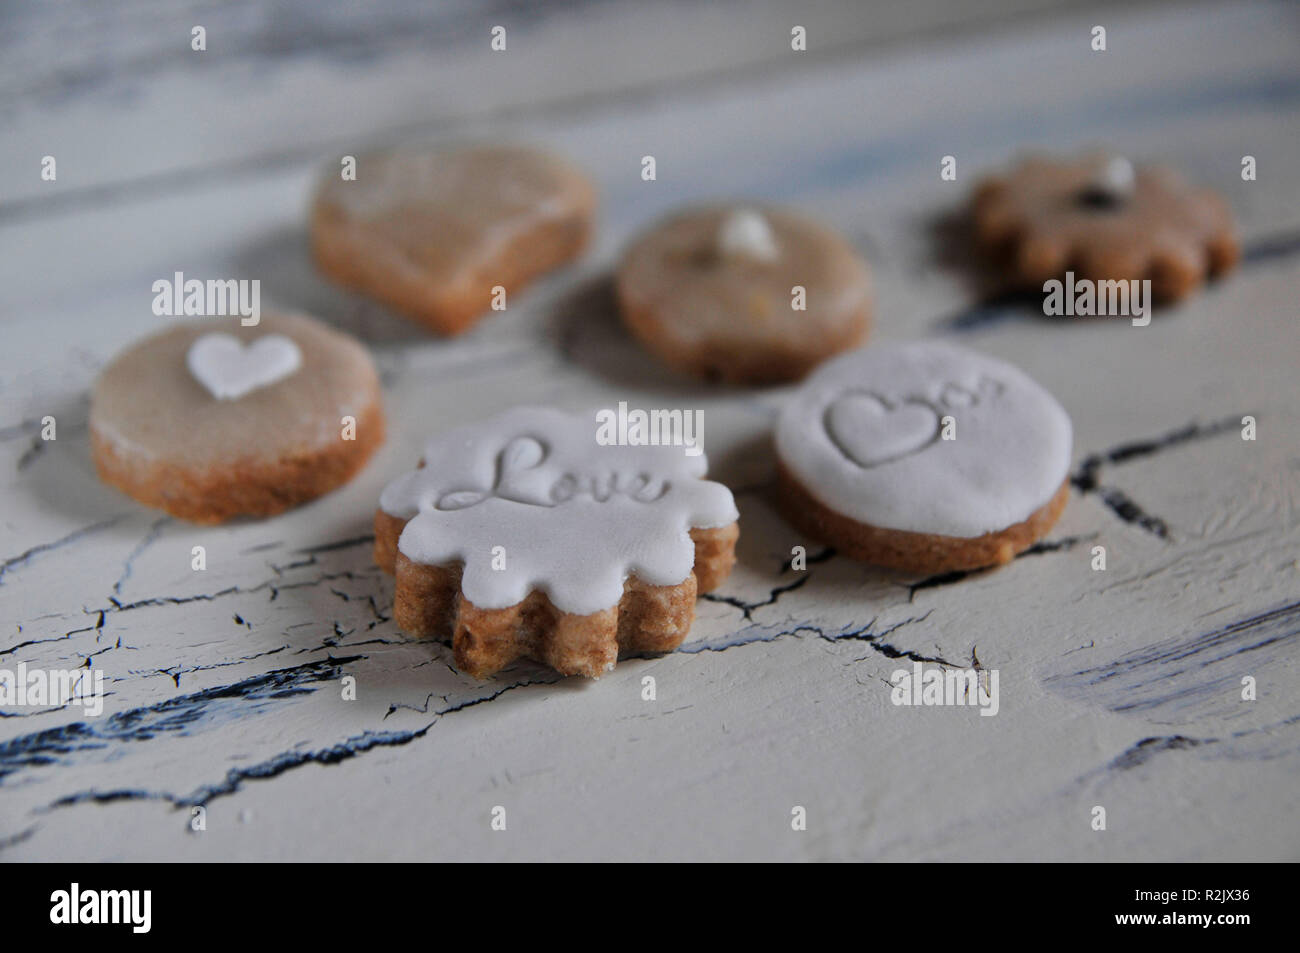 Cookies with heart and Love writing in close-up on white shabby chic background - Stock Image